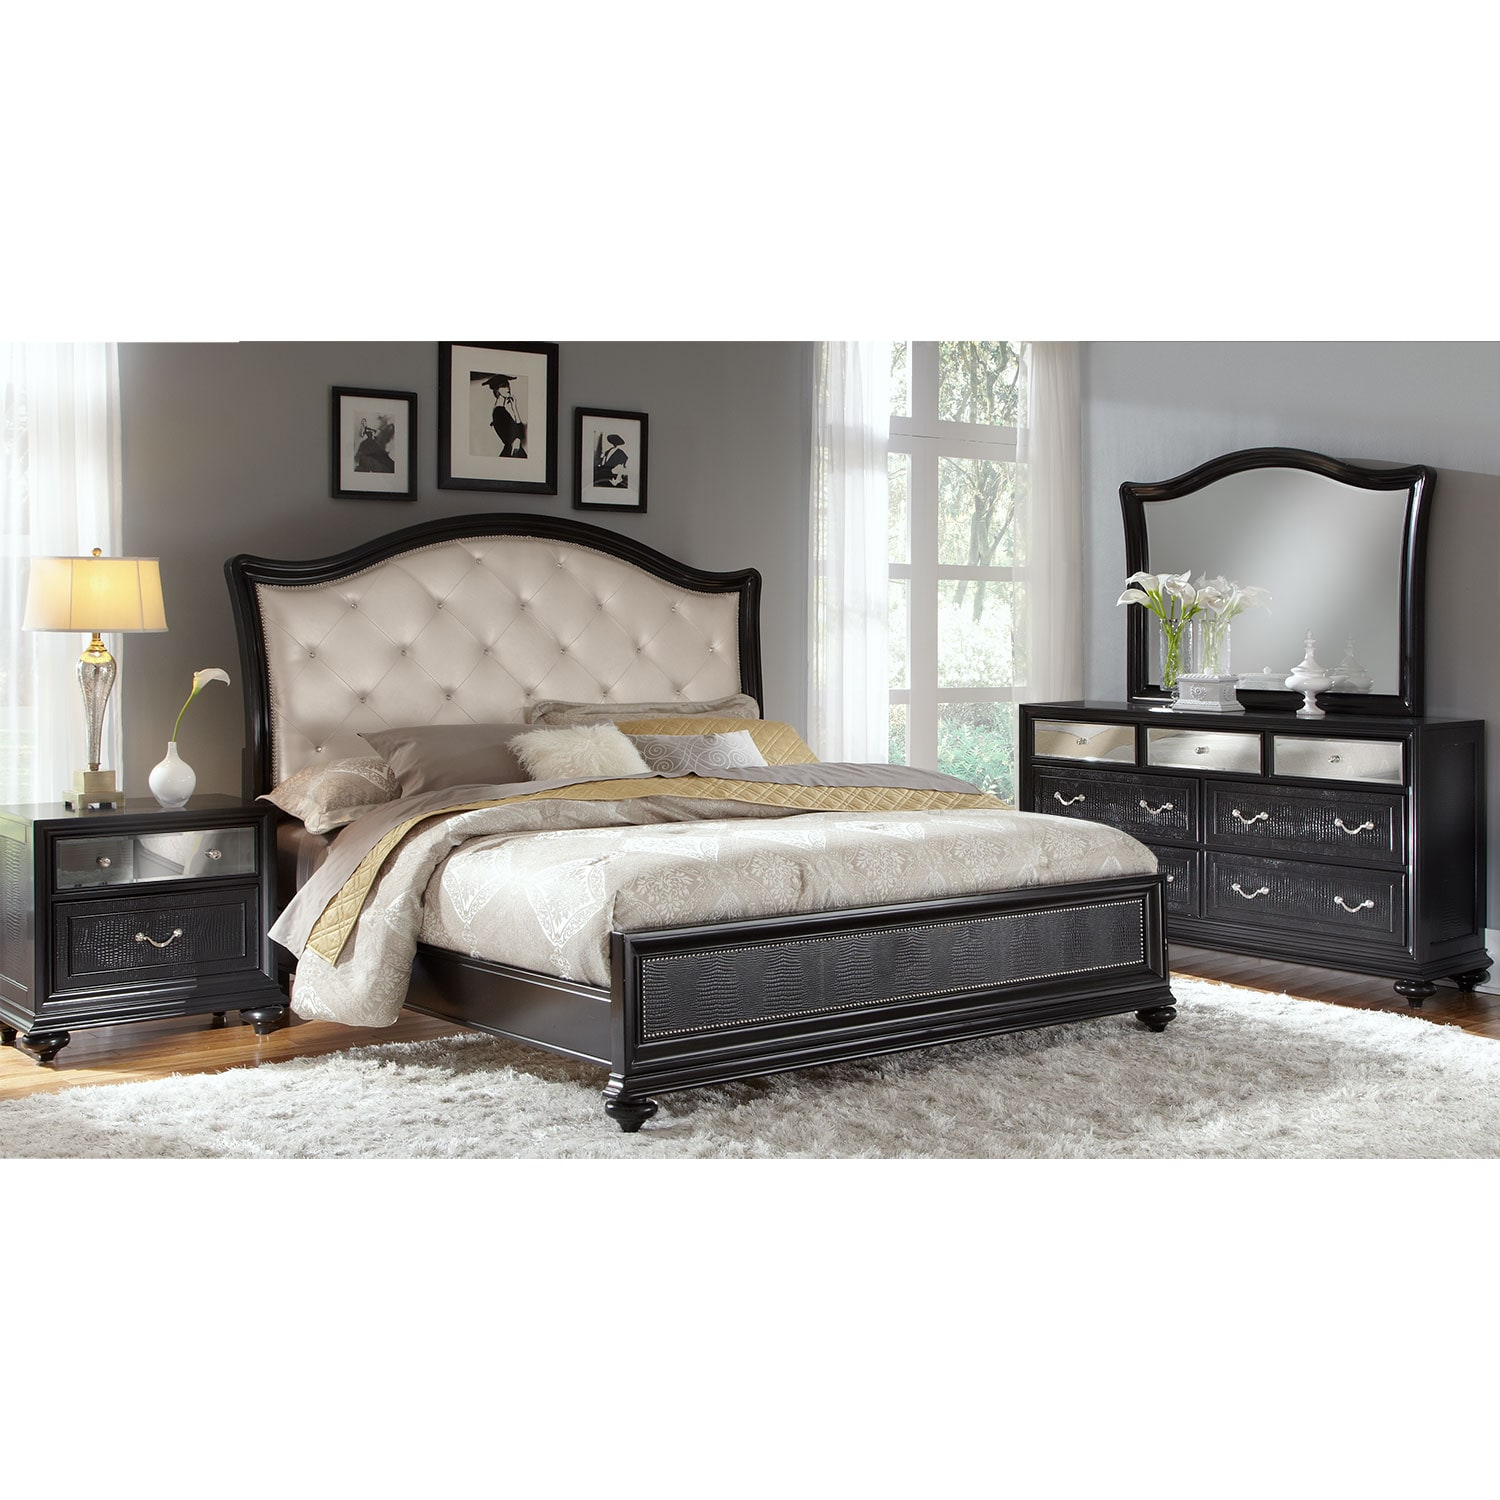 bed furniture sets shop 6 bedroom sets value city furniture 10244